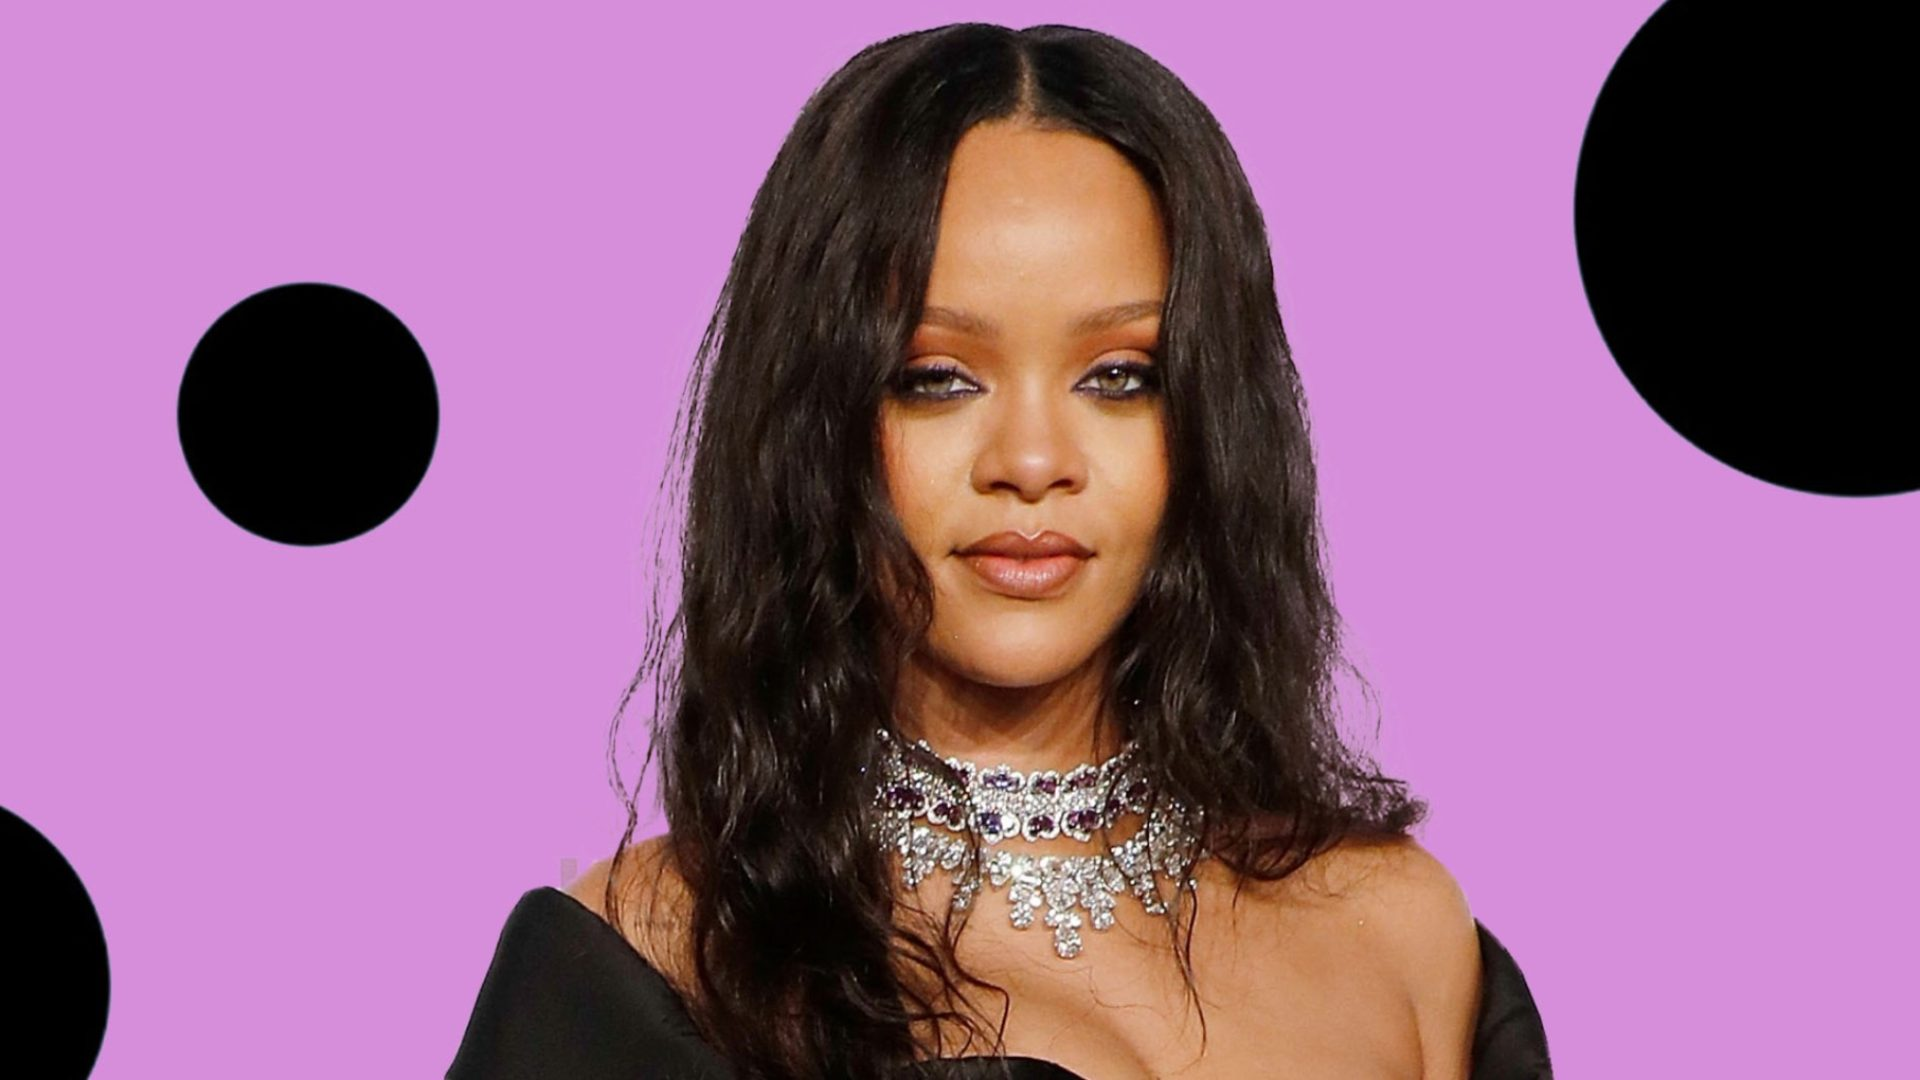 Rihanna Stunned In Box Braids At Fenty Pop-Up Shop